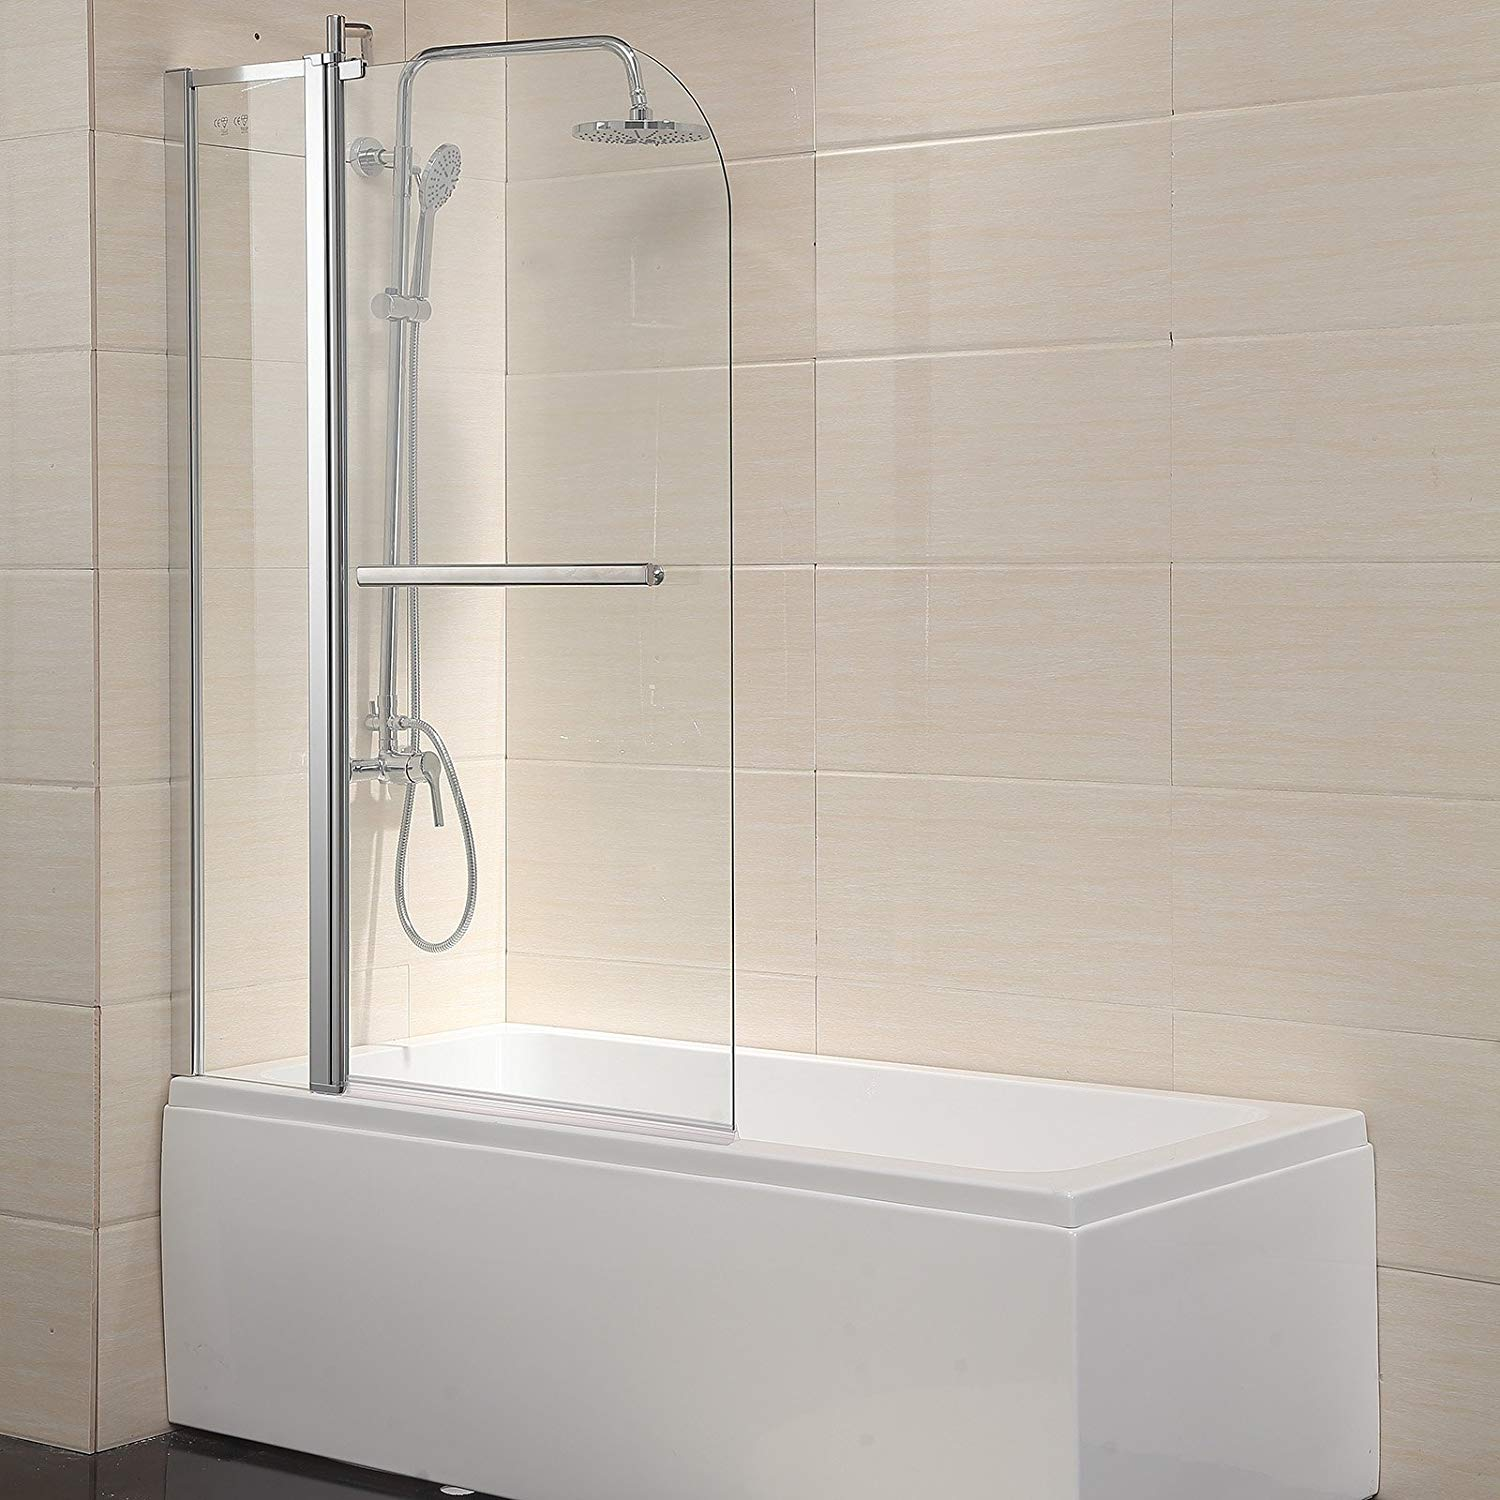 Top 10 Best Glass Shower Doors In 2020 Reviews Top Best